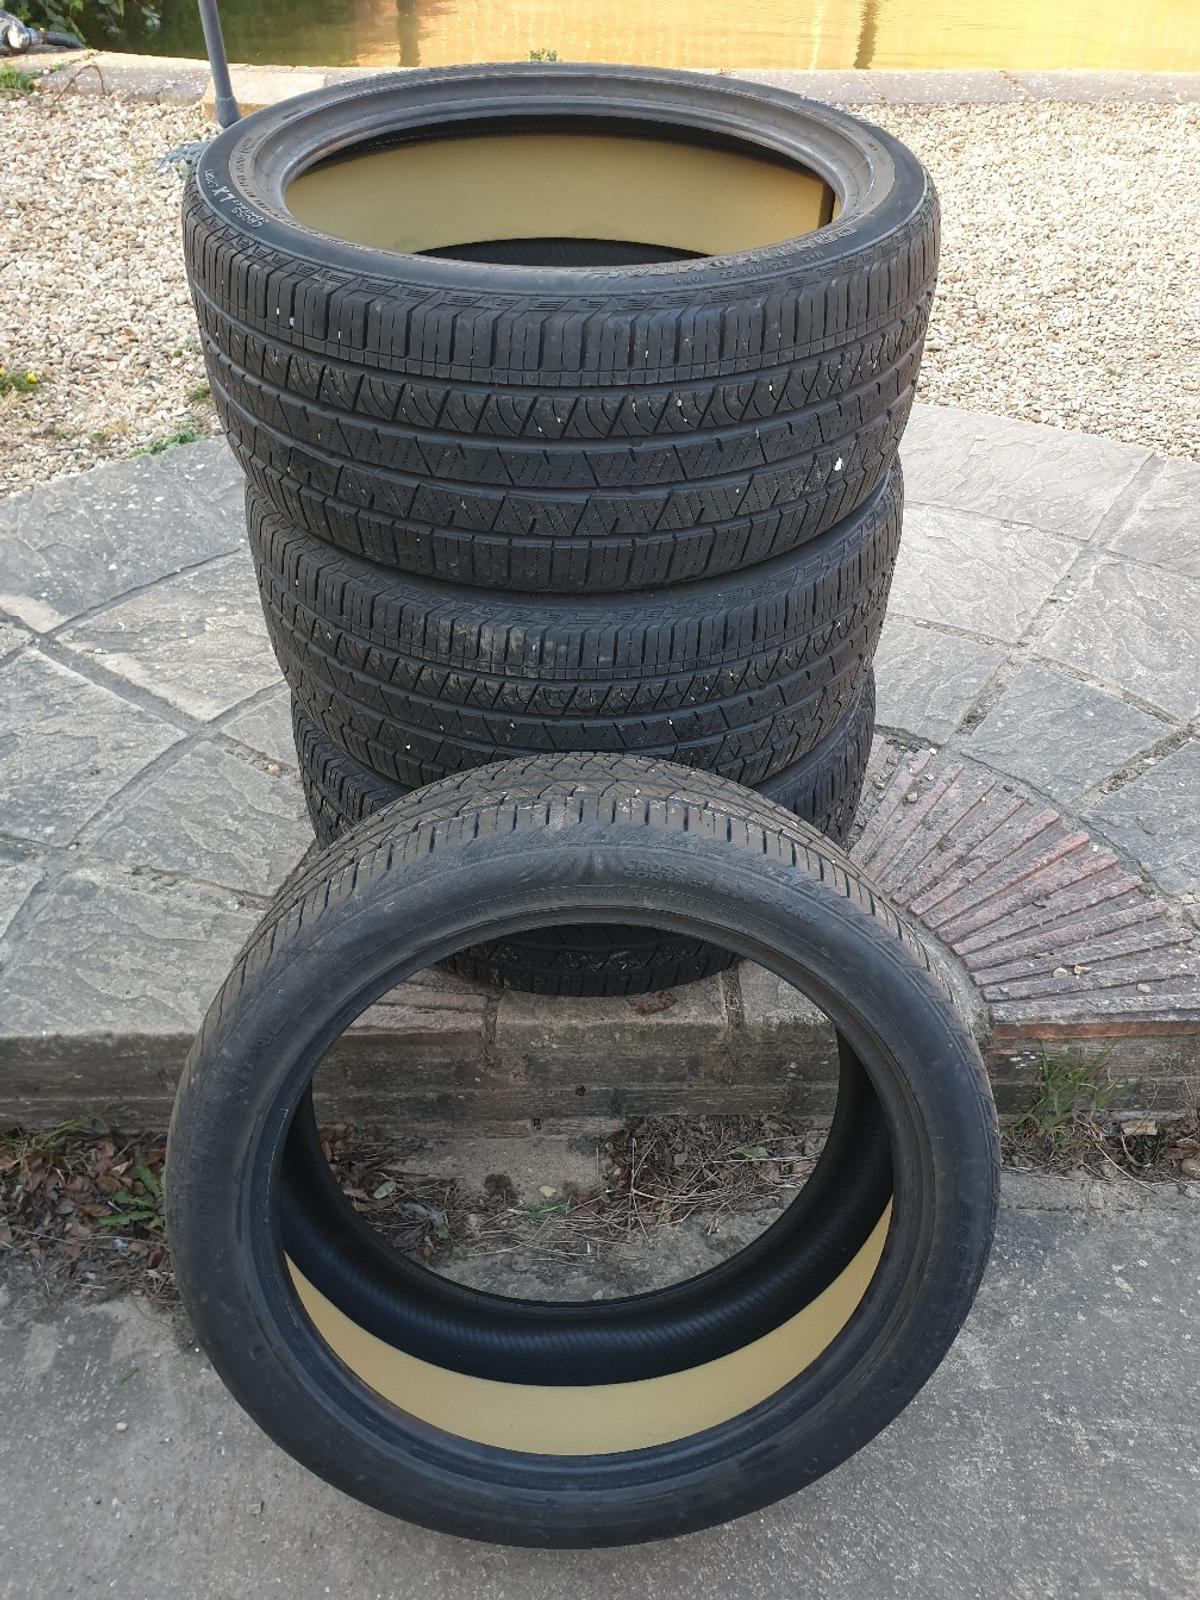 For sale are 4 x 275/40YR22 CONTINENTAL CROSS CONTACT LX SPORT SILENT TYRES. Tyre tread 6mm on all tyres. Any questions please call 079000 55939  COLLECTION ONLY PE12 9QG